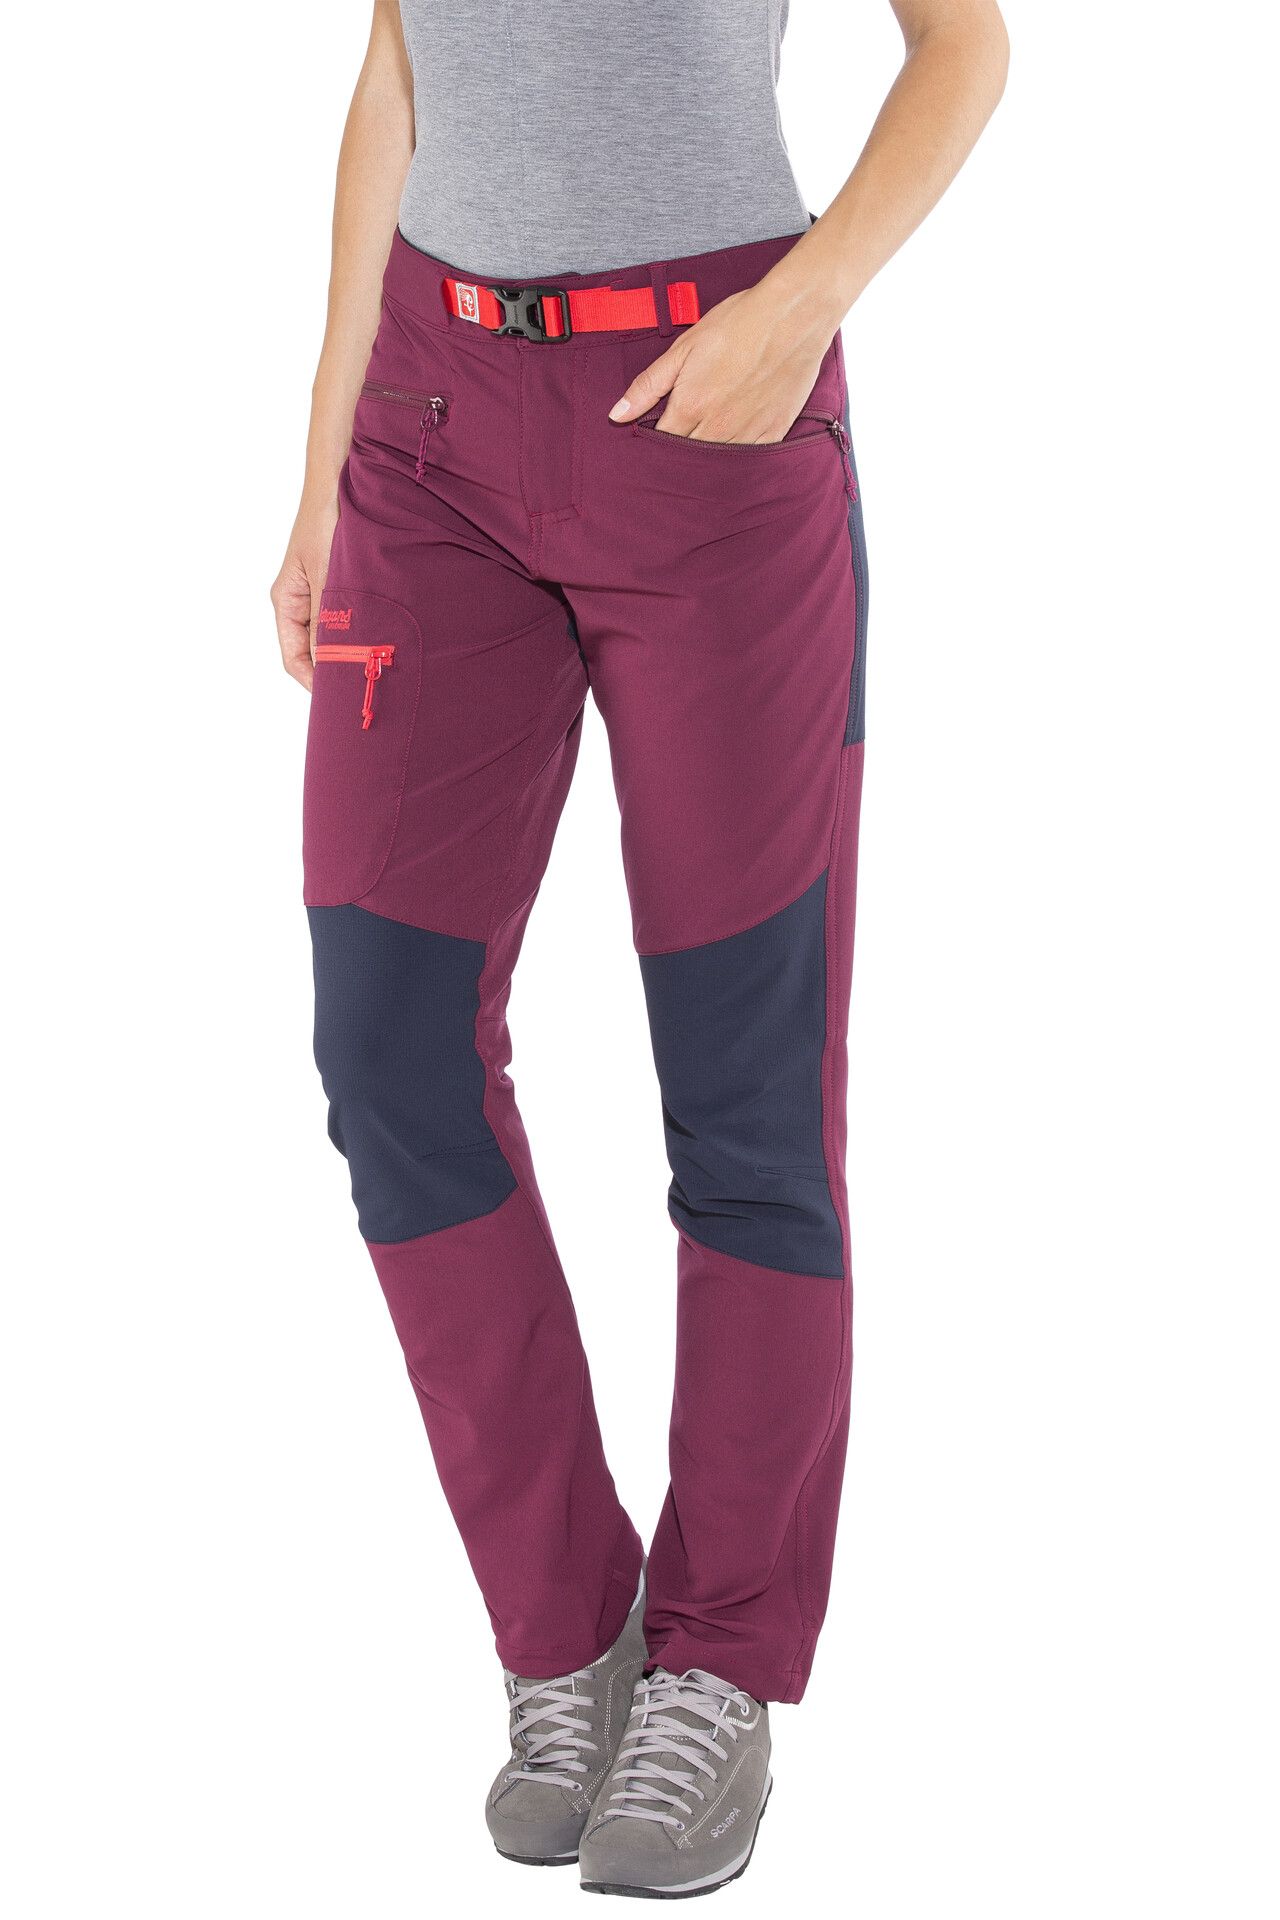 Bergans Cecilie Mountaineering Pants Women dark cherrynavystrawberry